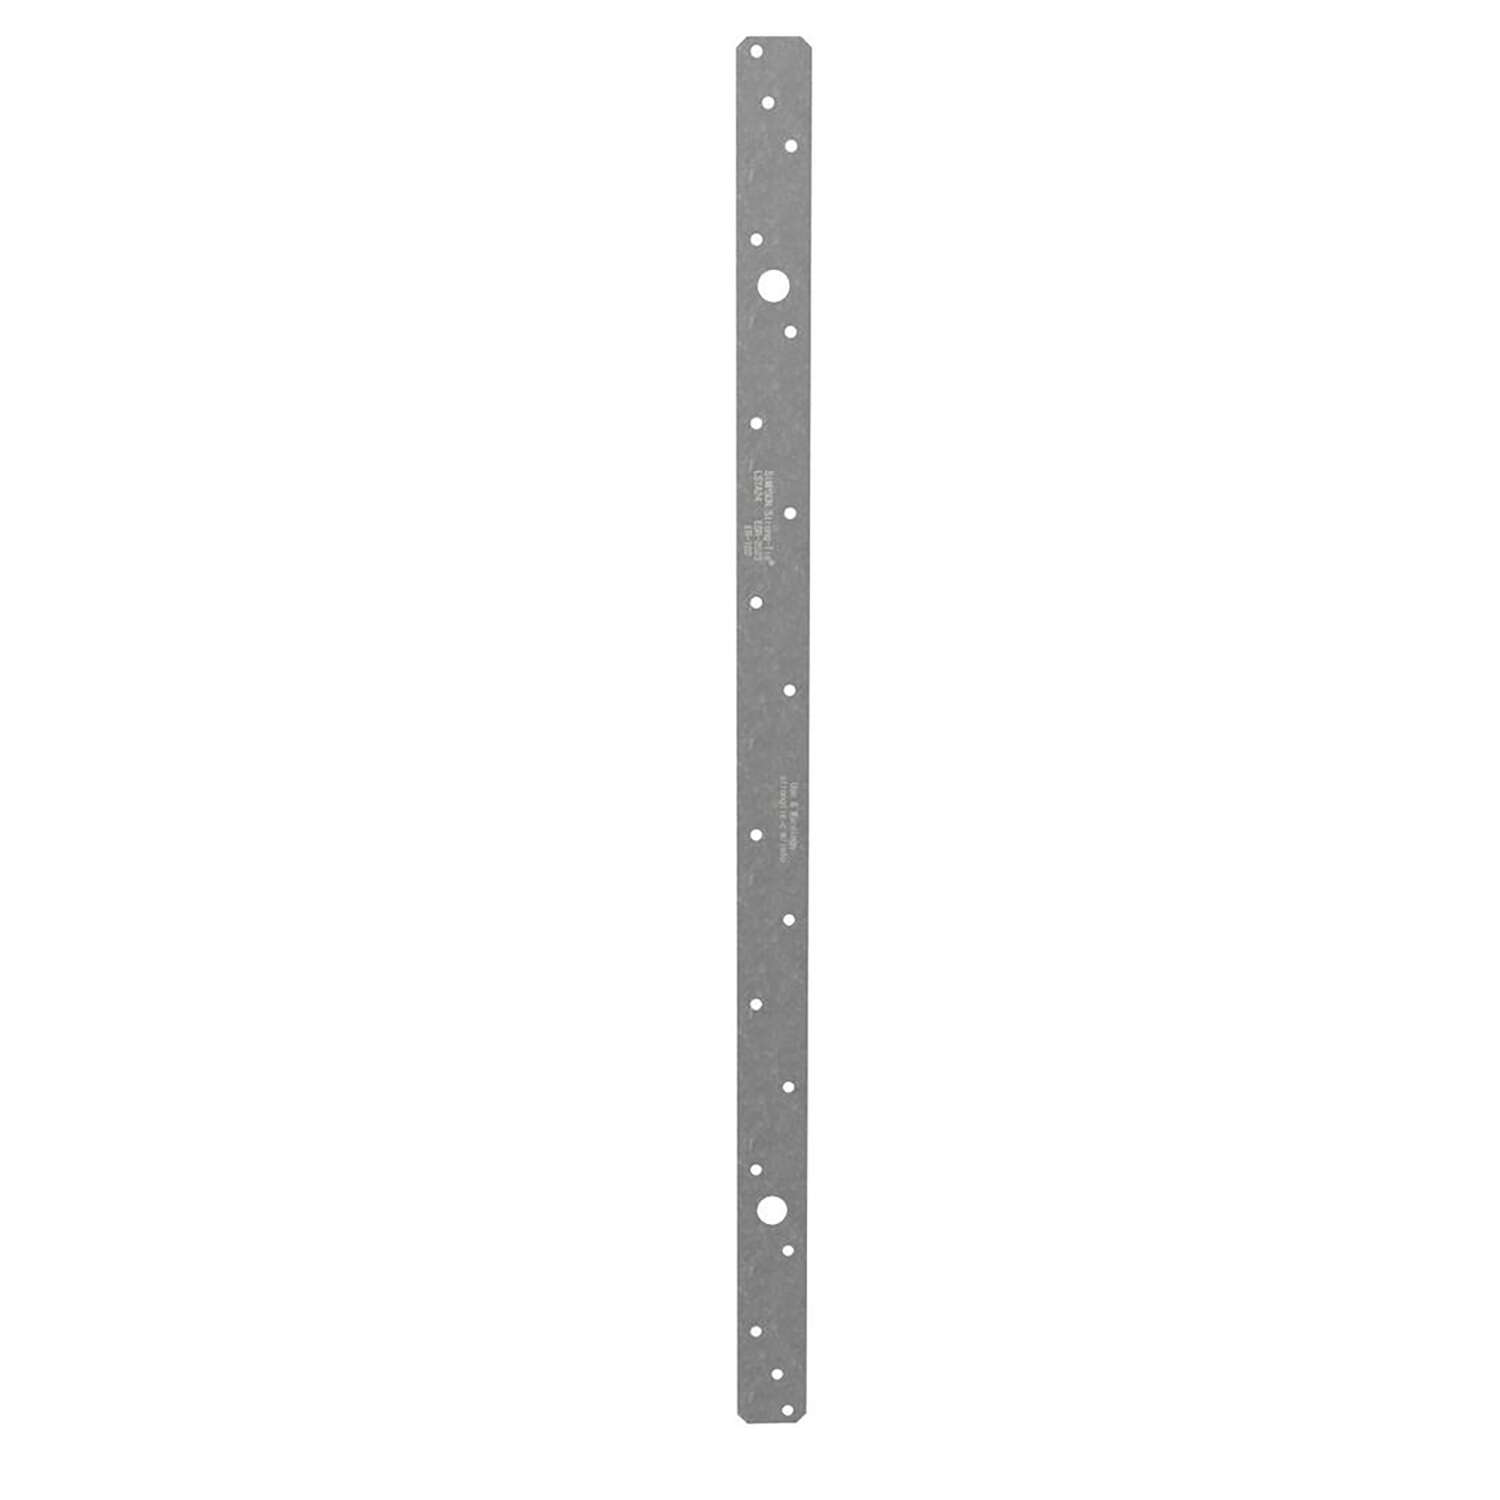 Simpson Strong-Tie 24 in. H x 1.25 in. W 20 Ga. Galvanized Steel Strap